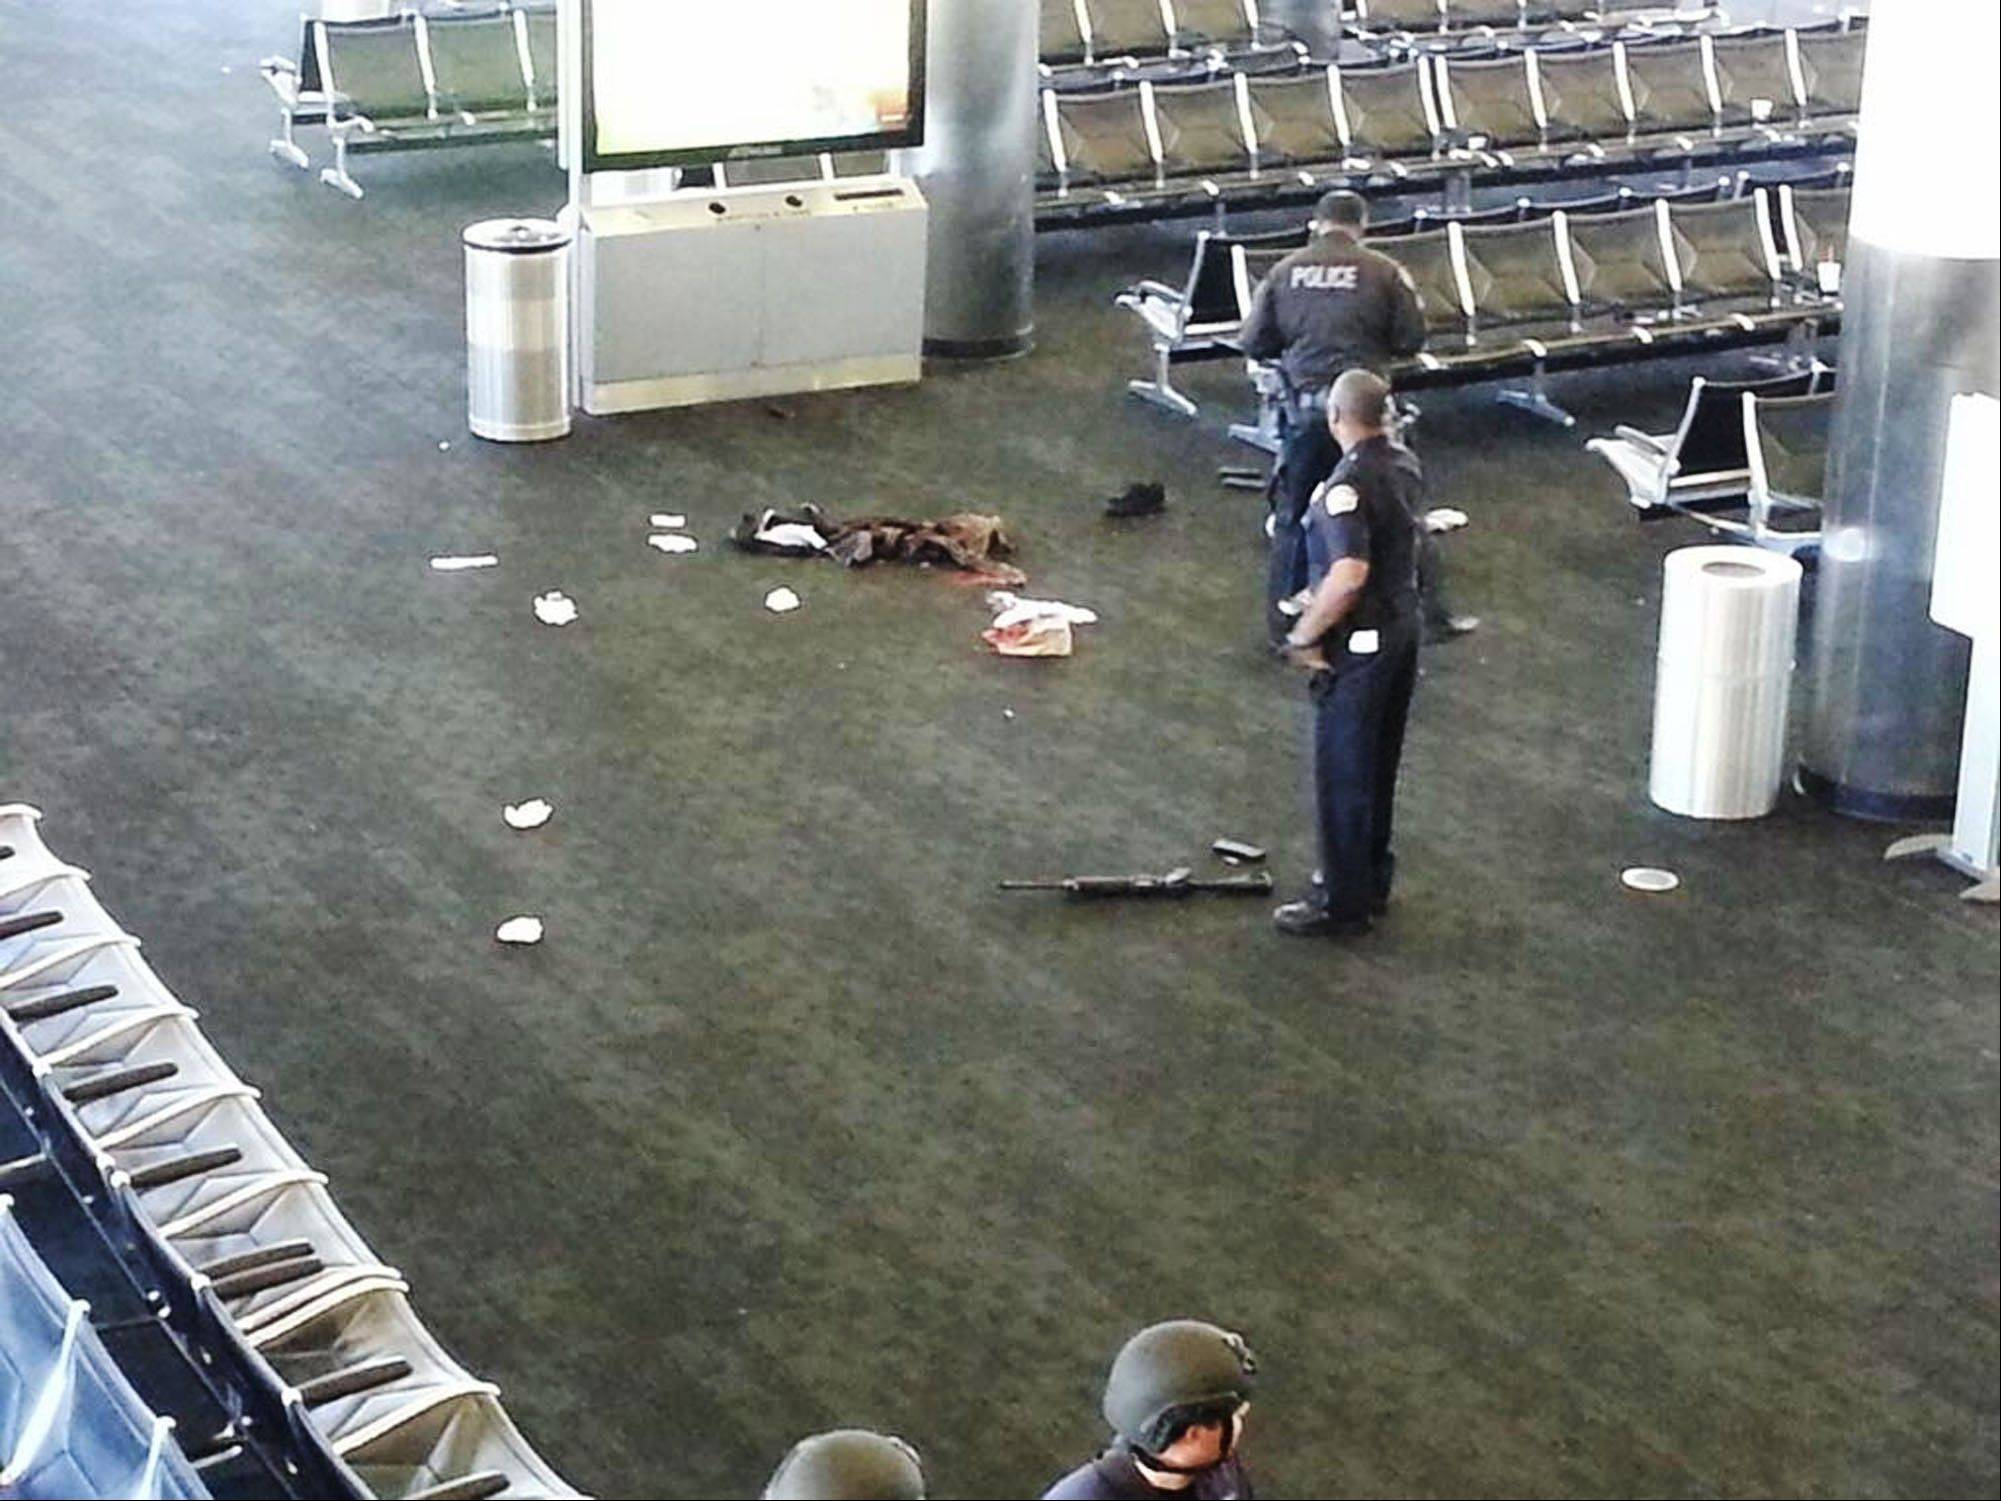 Police officers stand Friday near an unidentified weapon in Terminal 3 of the Los Angeles International Airport.